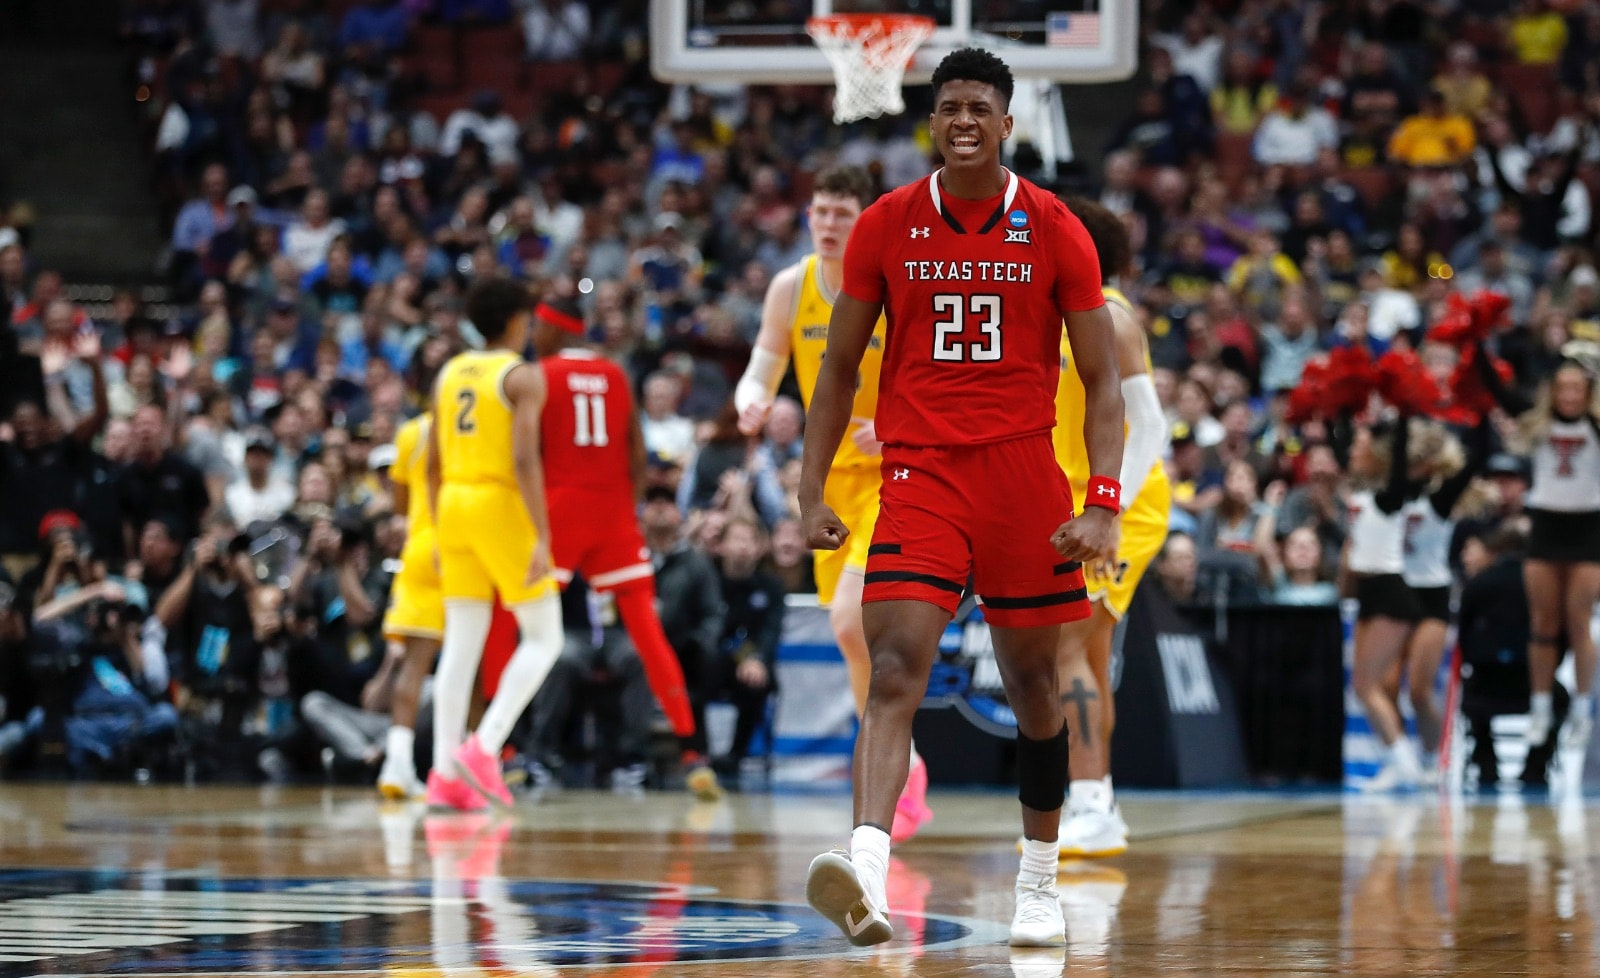 Jarrett Culver #23 of the Texas Tech Red Raiders celebrates after a play against the Michigan Wolverines during the 2019 NCAA Men's Basketball Tournament West Regional at Honda Center on March 28, 2019 in Anaheim, California.